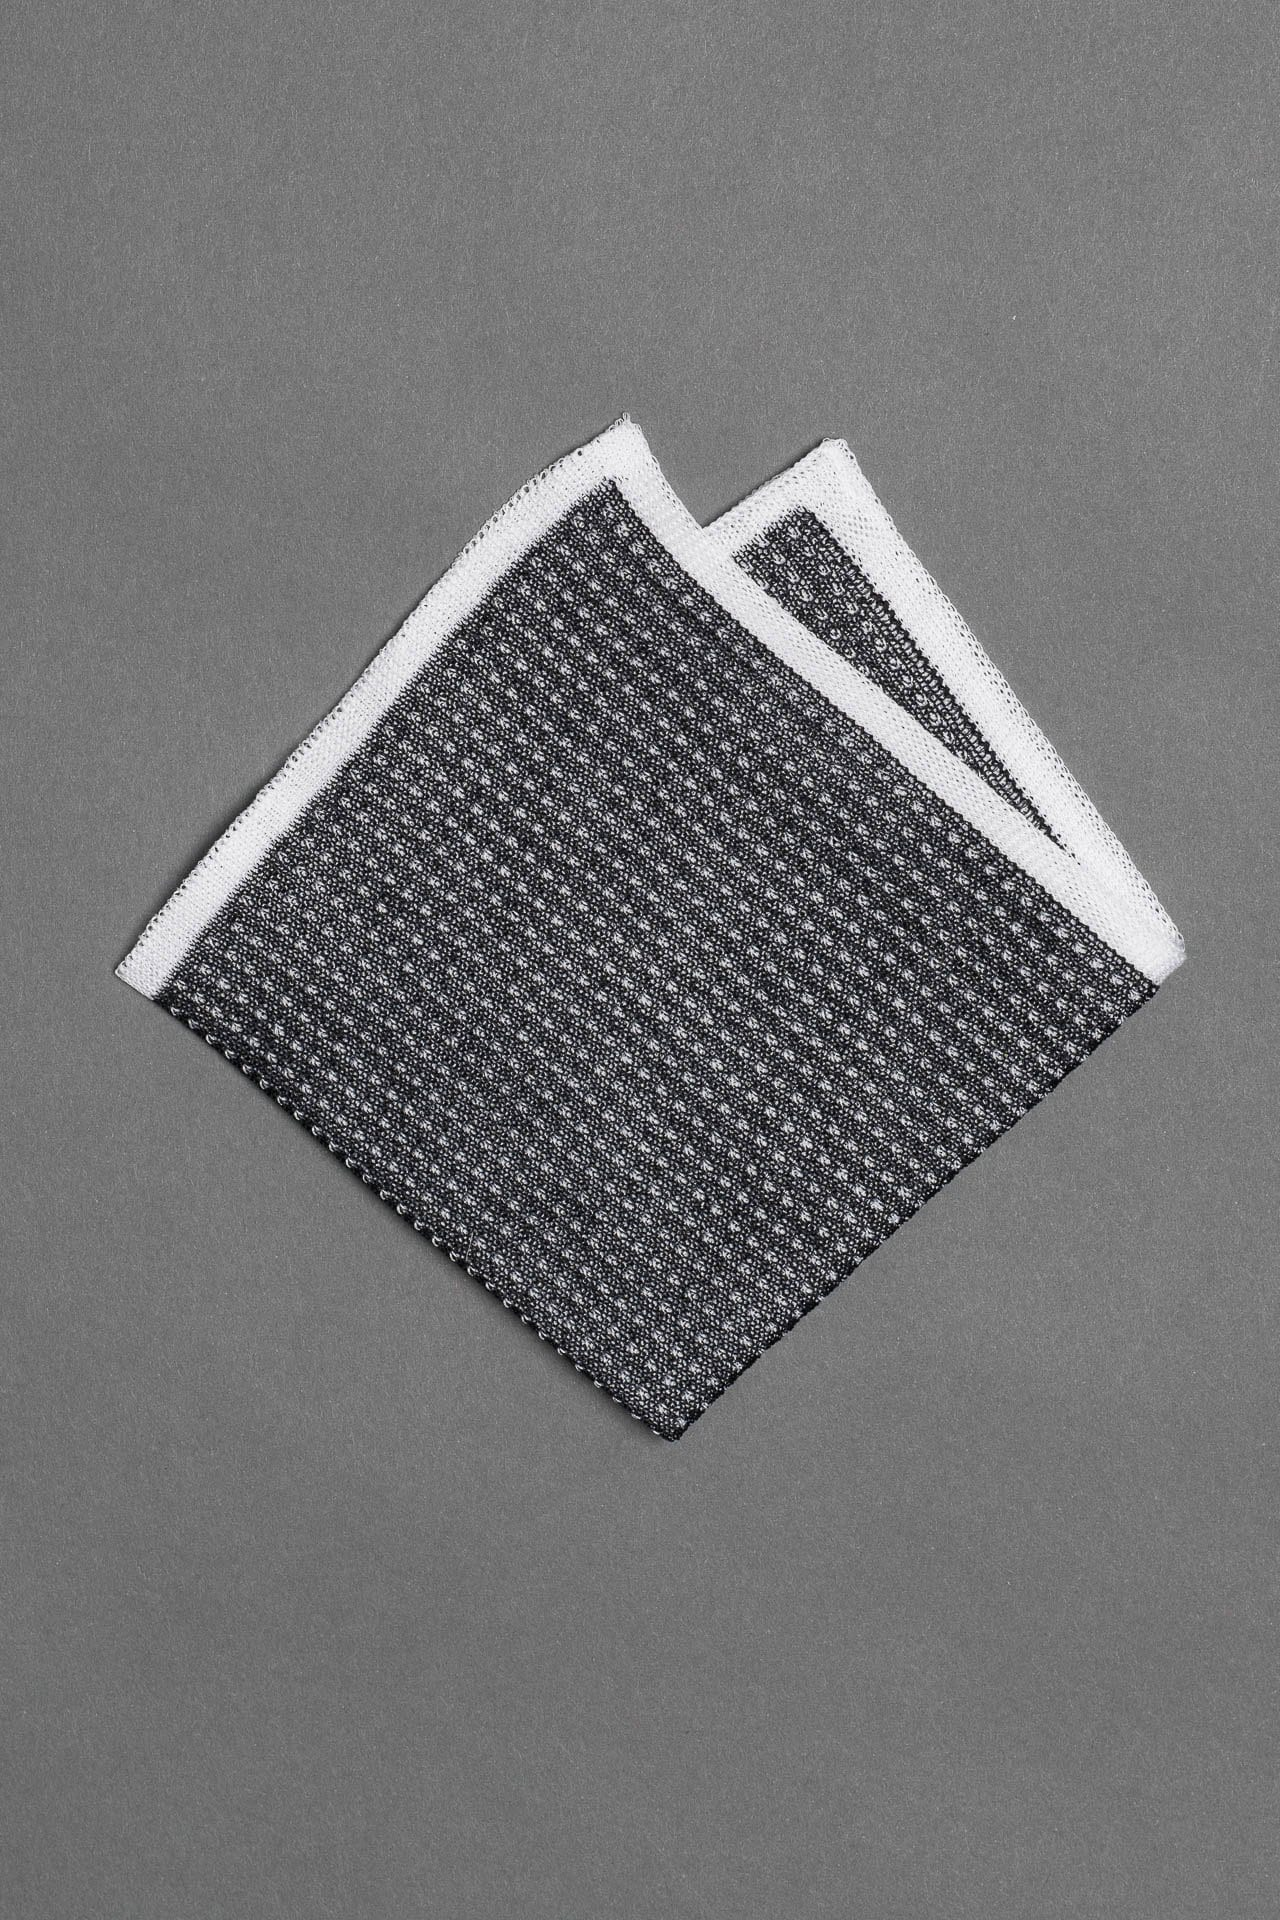 cotton-knitted-pocket-square-gray-with-white-frame-and-dots-made-in-italy